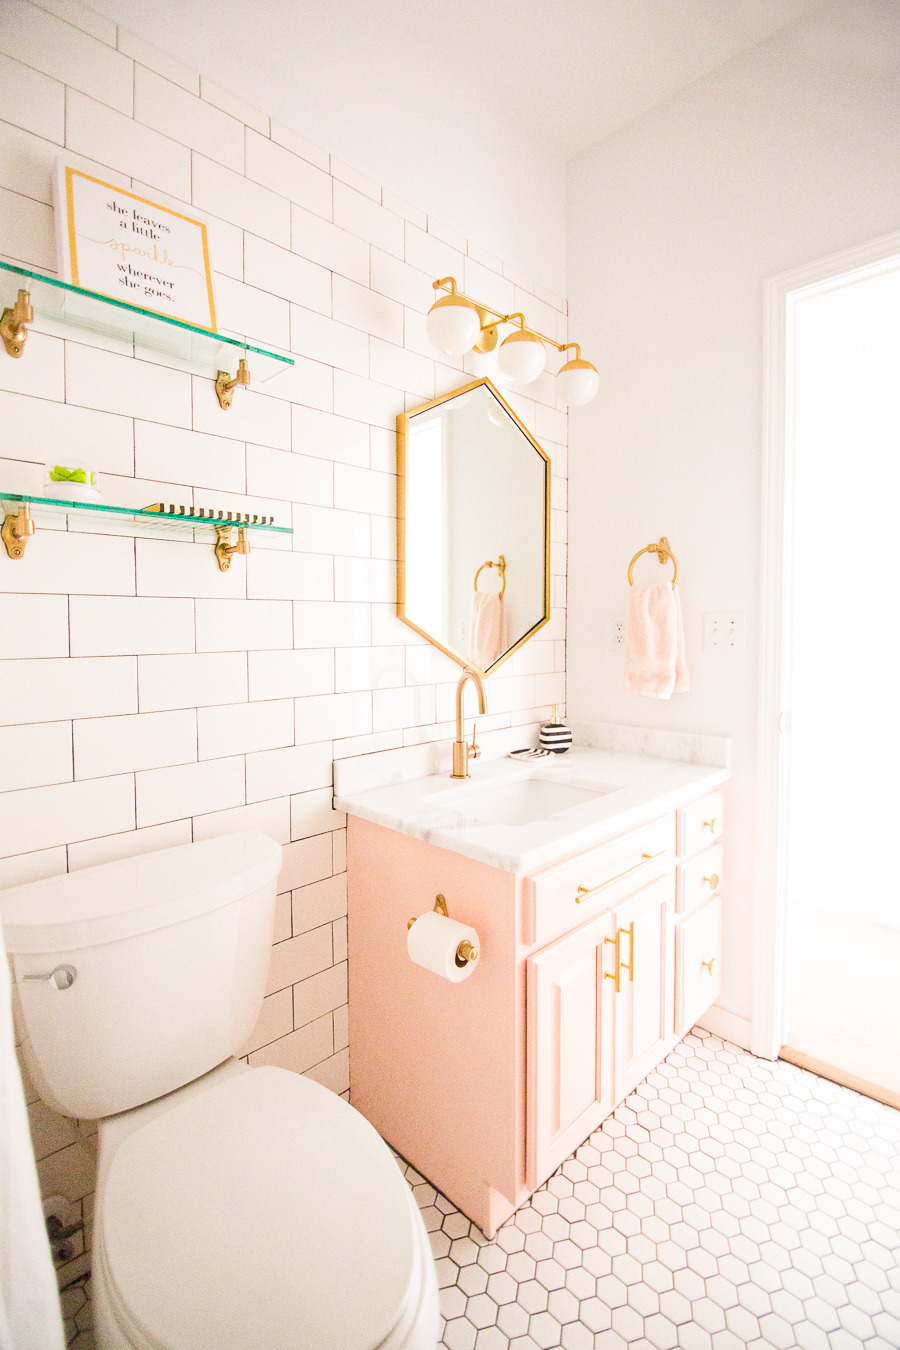 Modern Glam Blush Girls Bathroom Design gold hexagon mirror blush cabinets gold hardware white hexagon floor glass shelves pink bathroom cabinets gold orb sconce 1 1